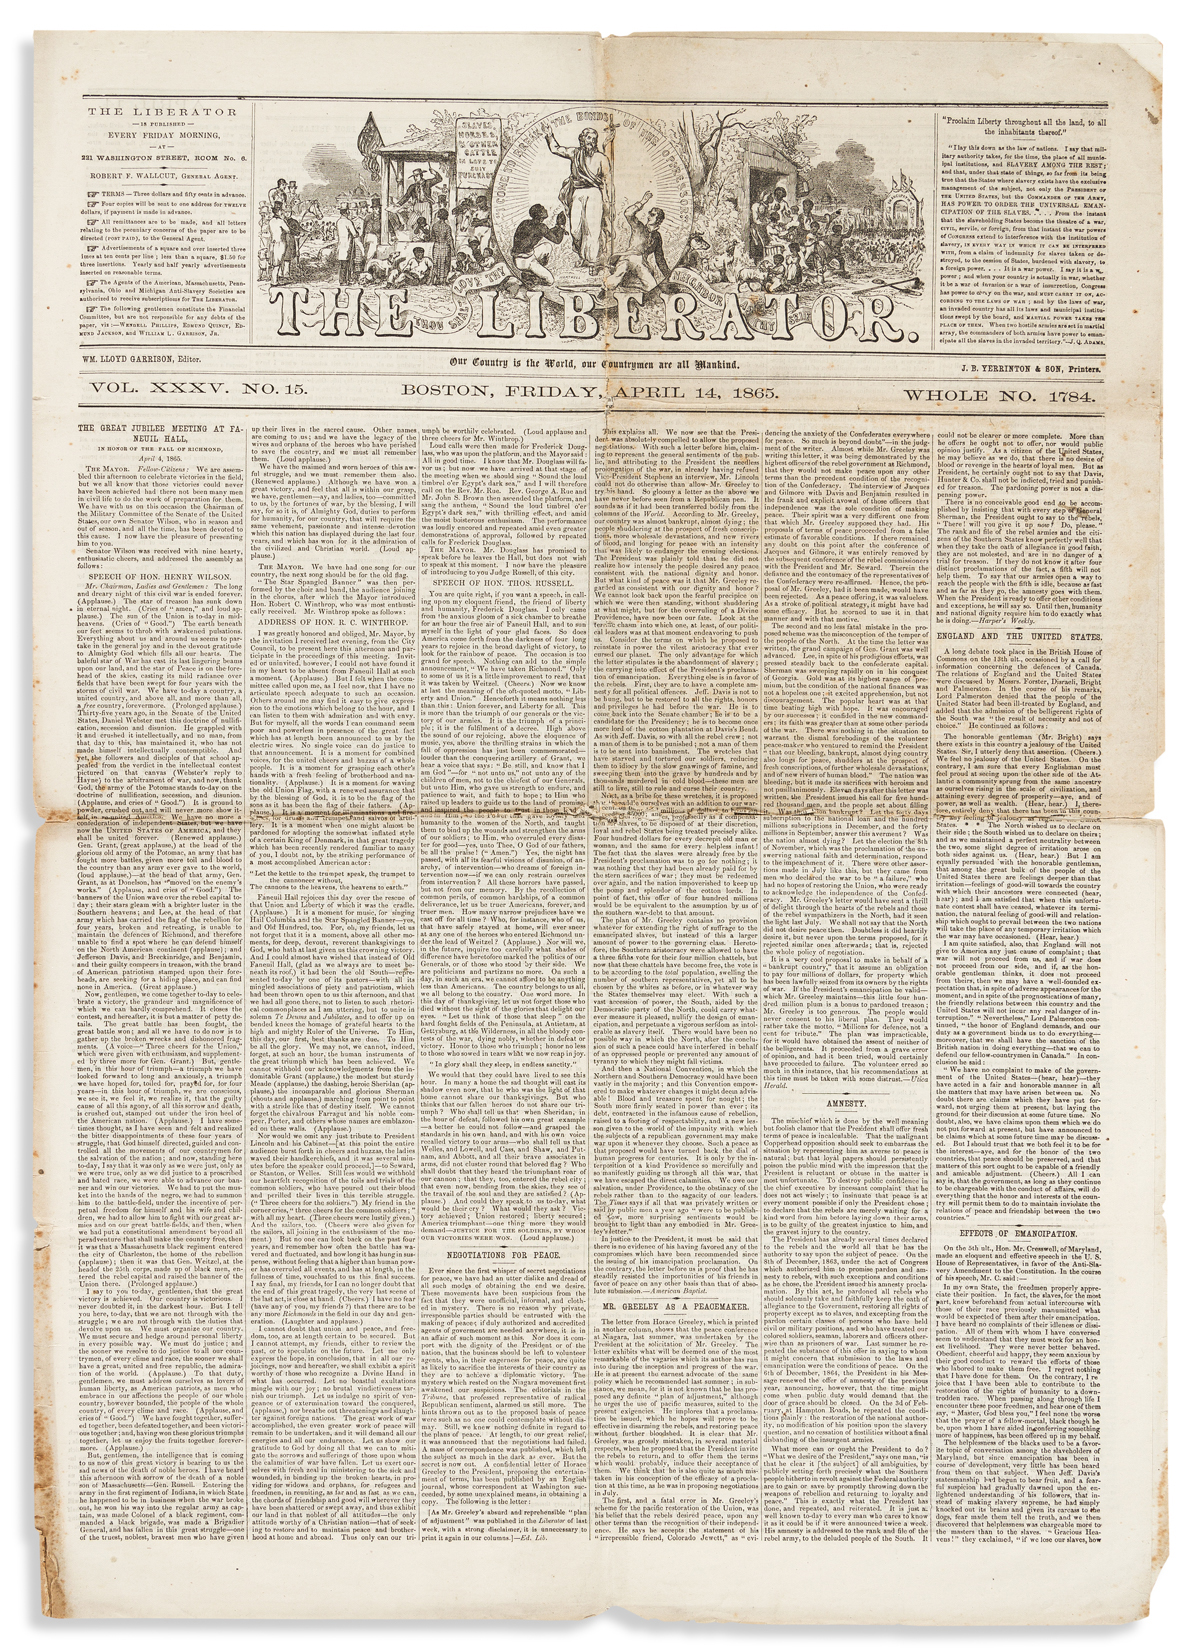 (SLAVERY AND ABOLITION.) Issue of the Liberator from the date of Lincolns assassination.